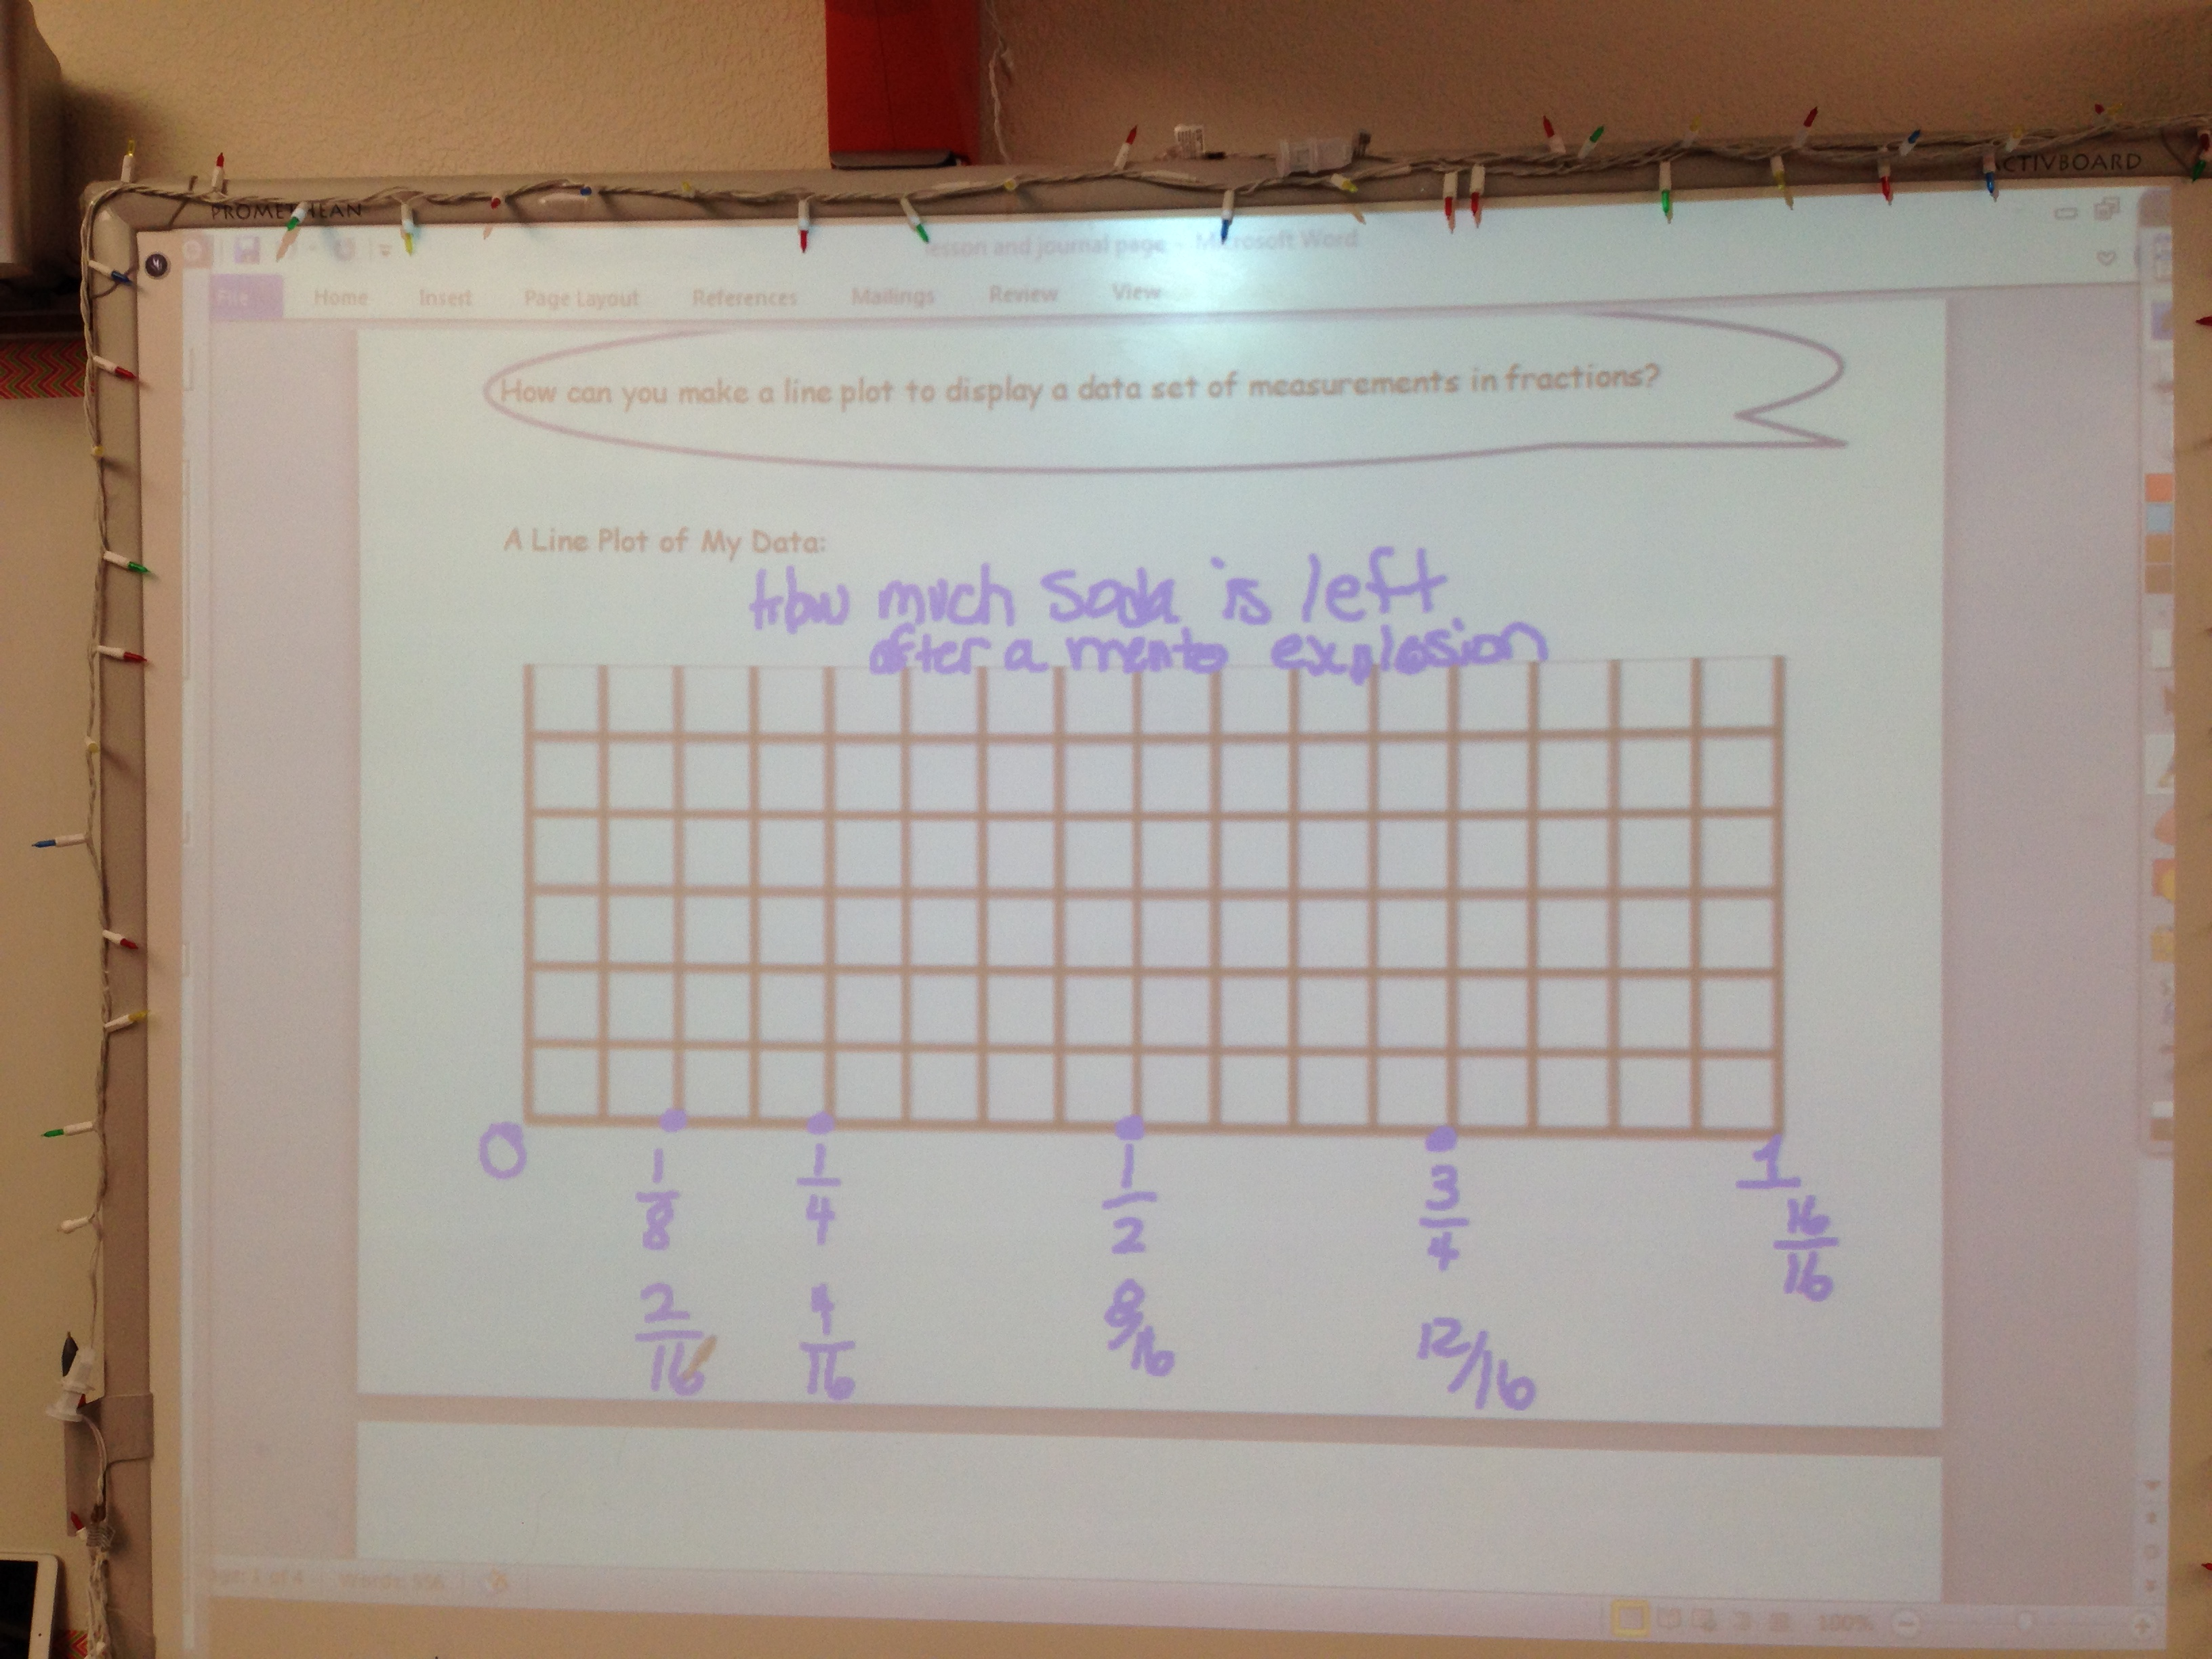 Setting up a line plot with fractions